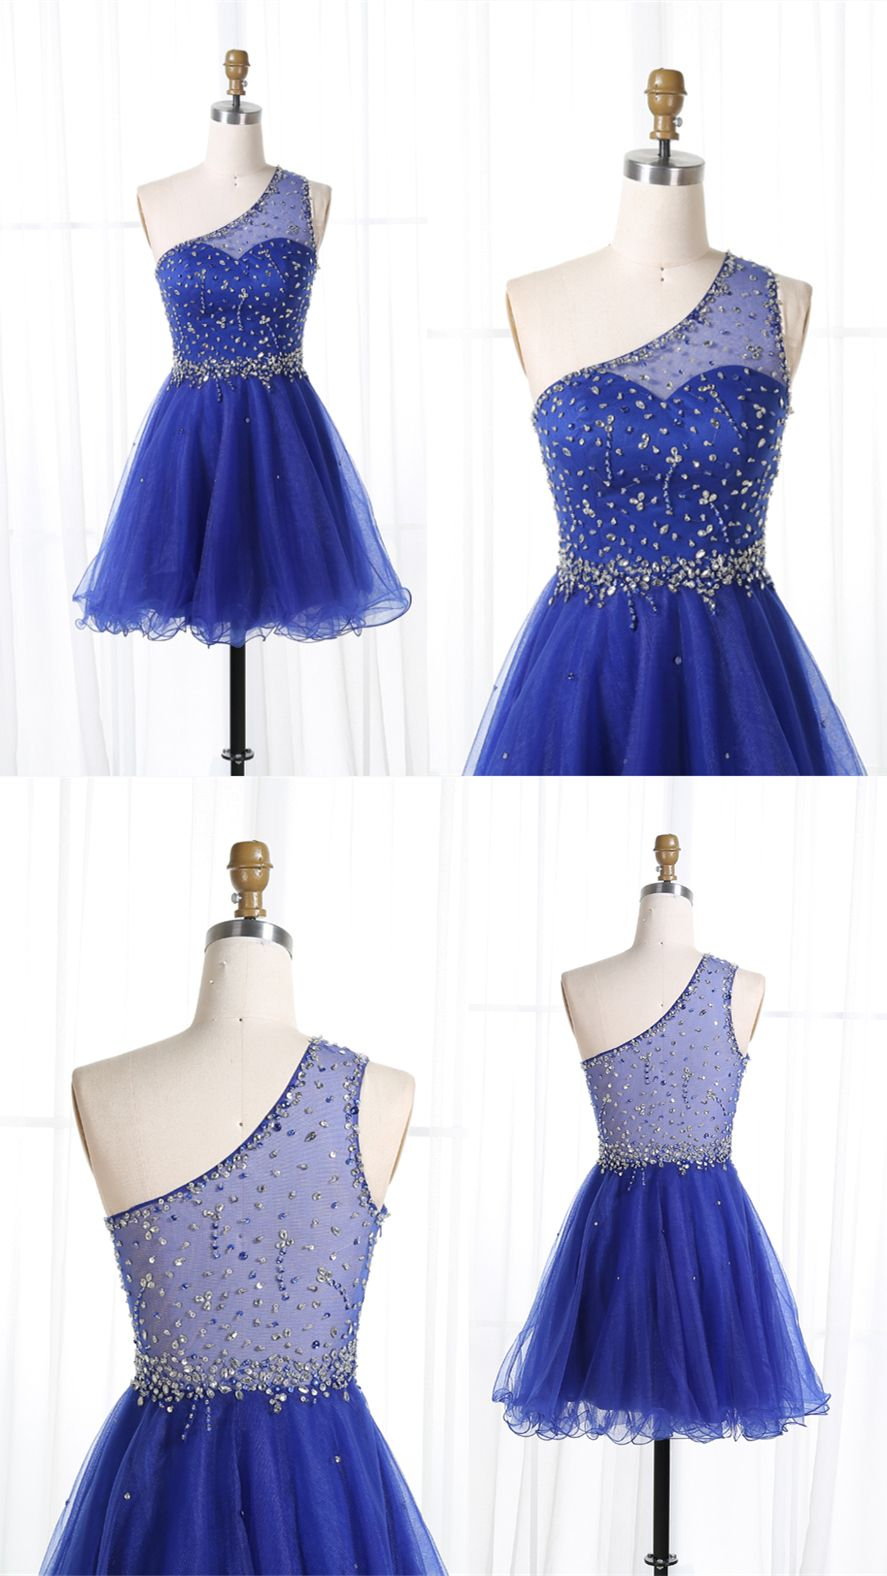 d6dbb570e8 A-Line One Shoulder Royal Blue Tulle Short Homecoming Dress with ...